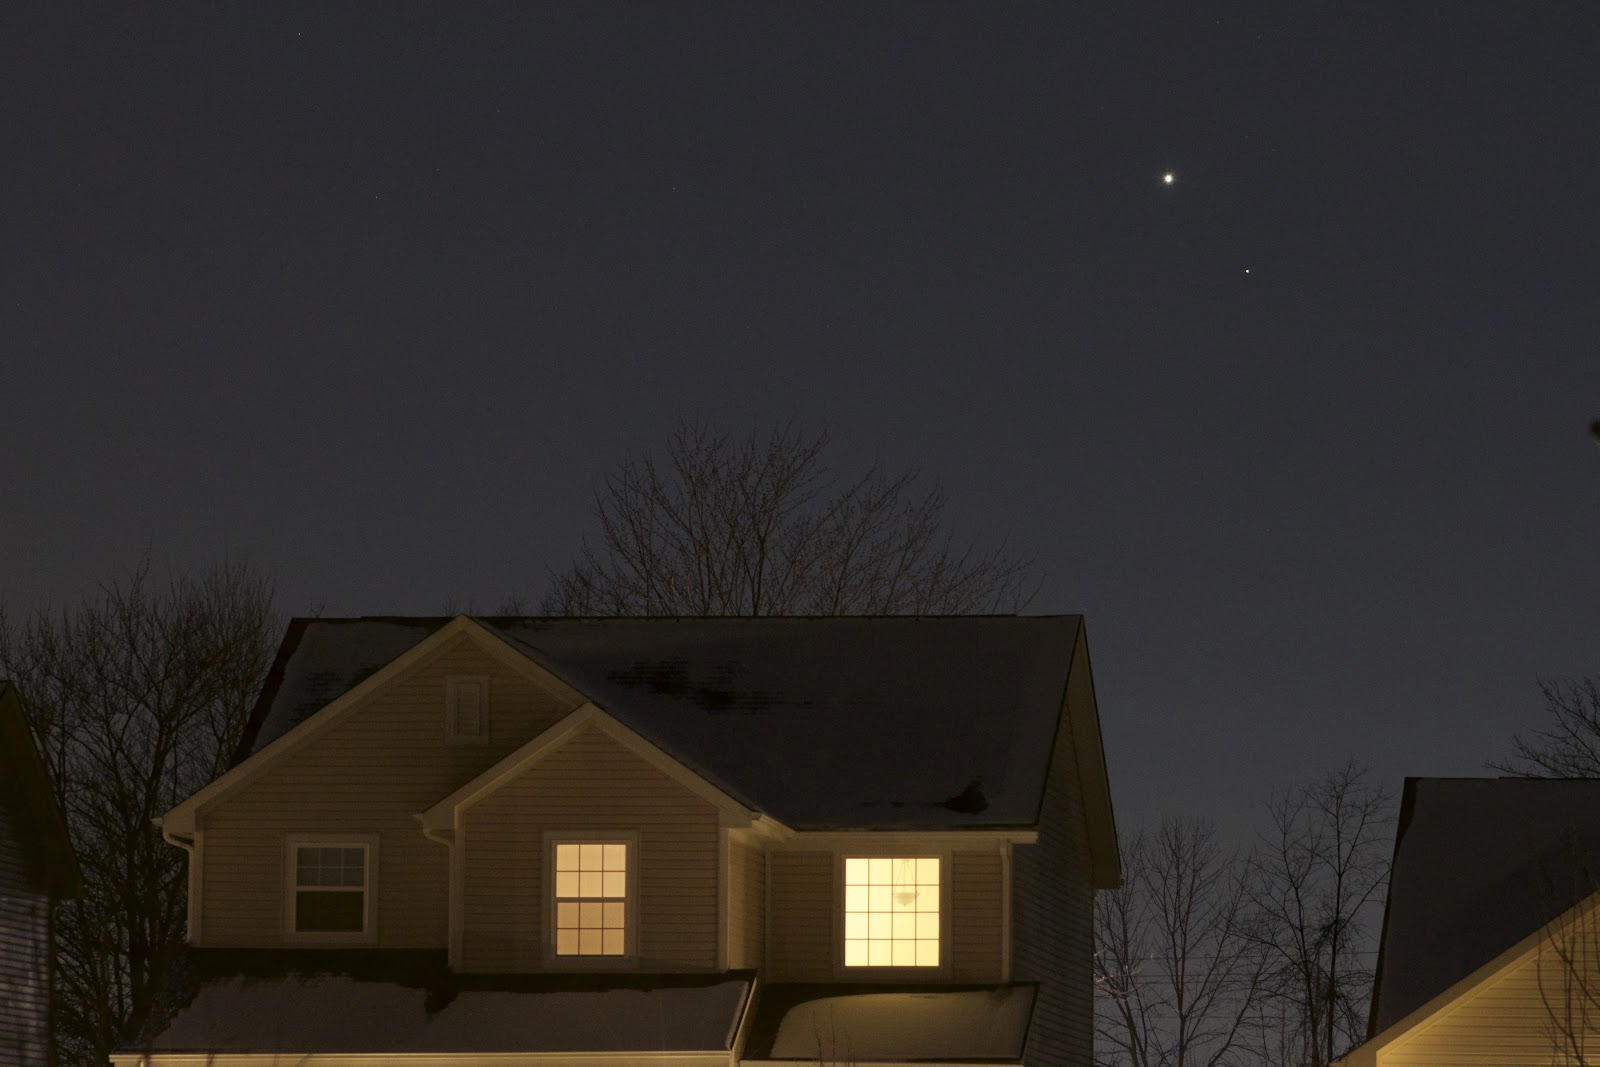 mars and venus over a house